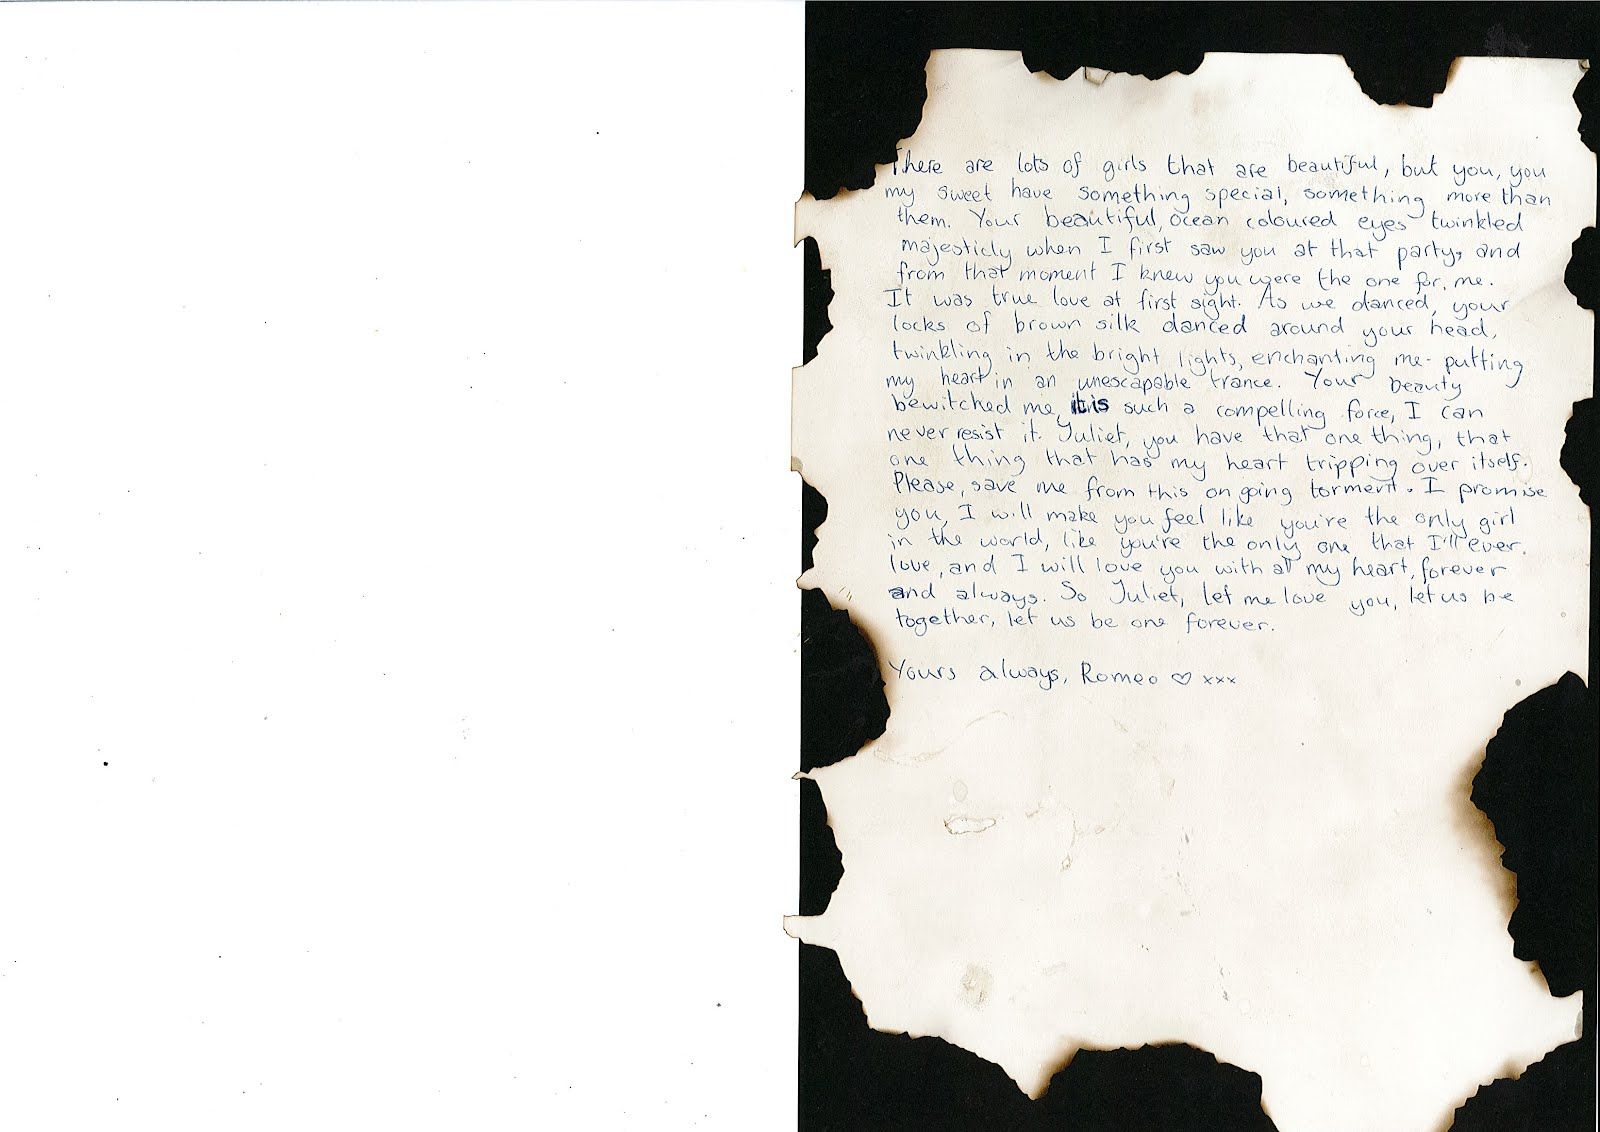 Romeo and Juliet Letter